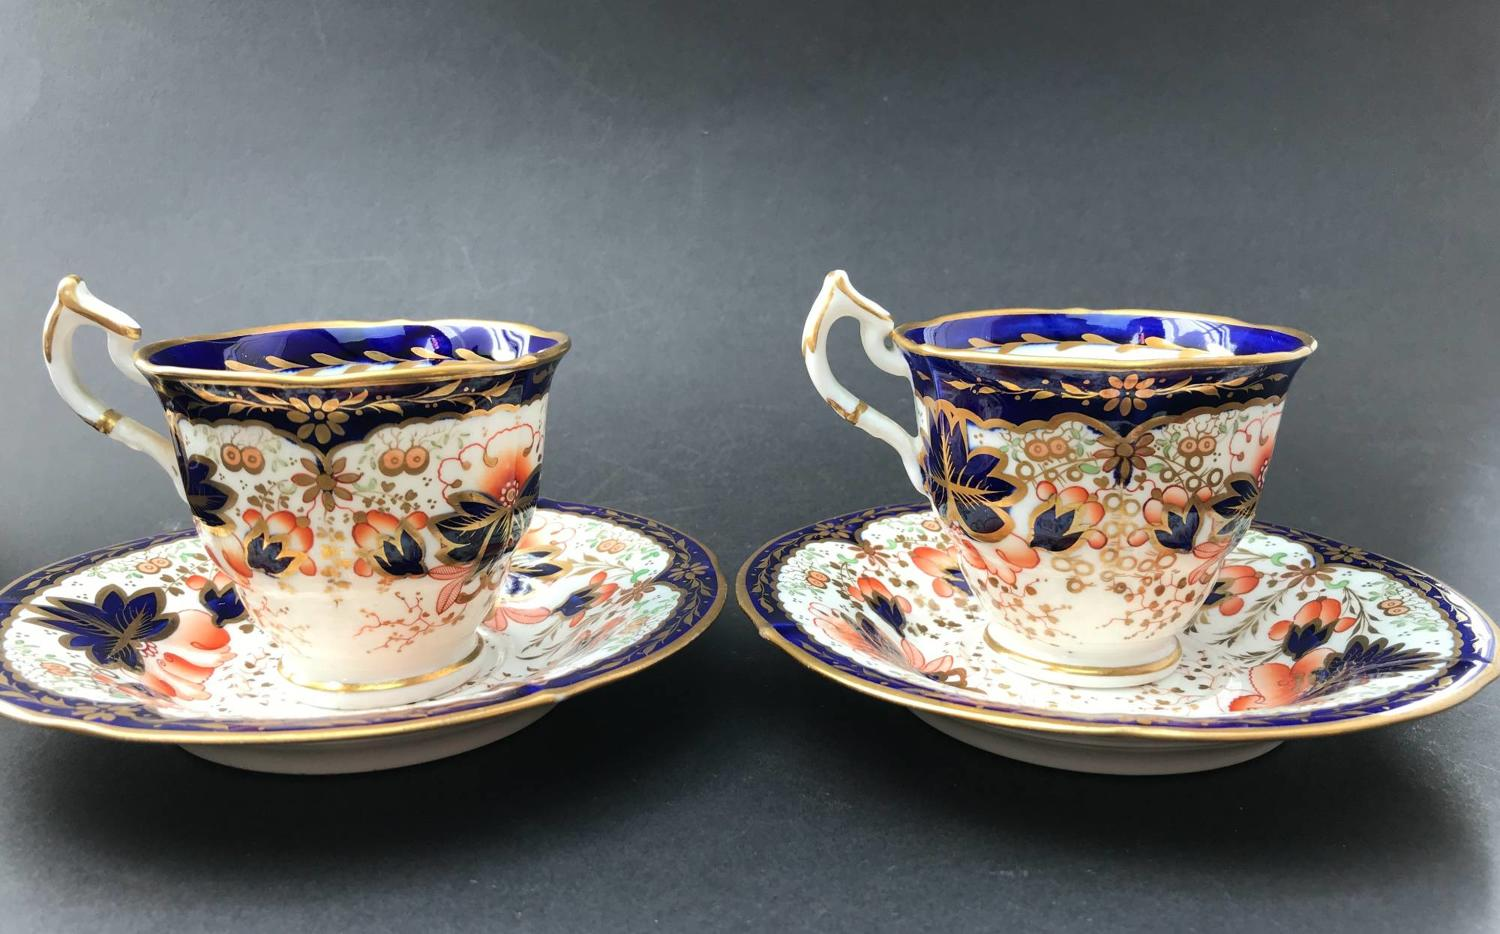 Pair of Staffordshire Porcelain Imari Pattern Coffee Cups & Saucers